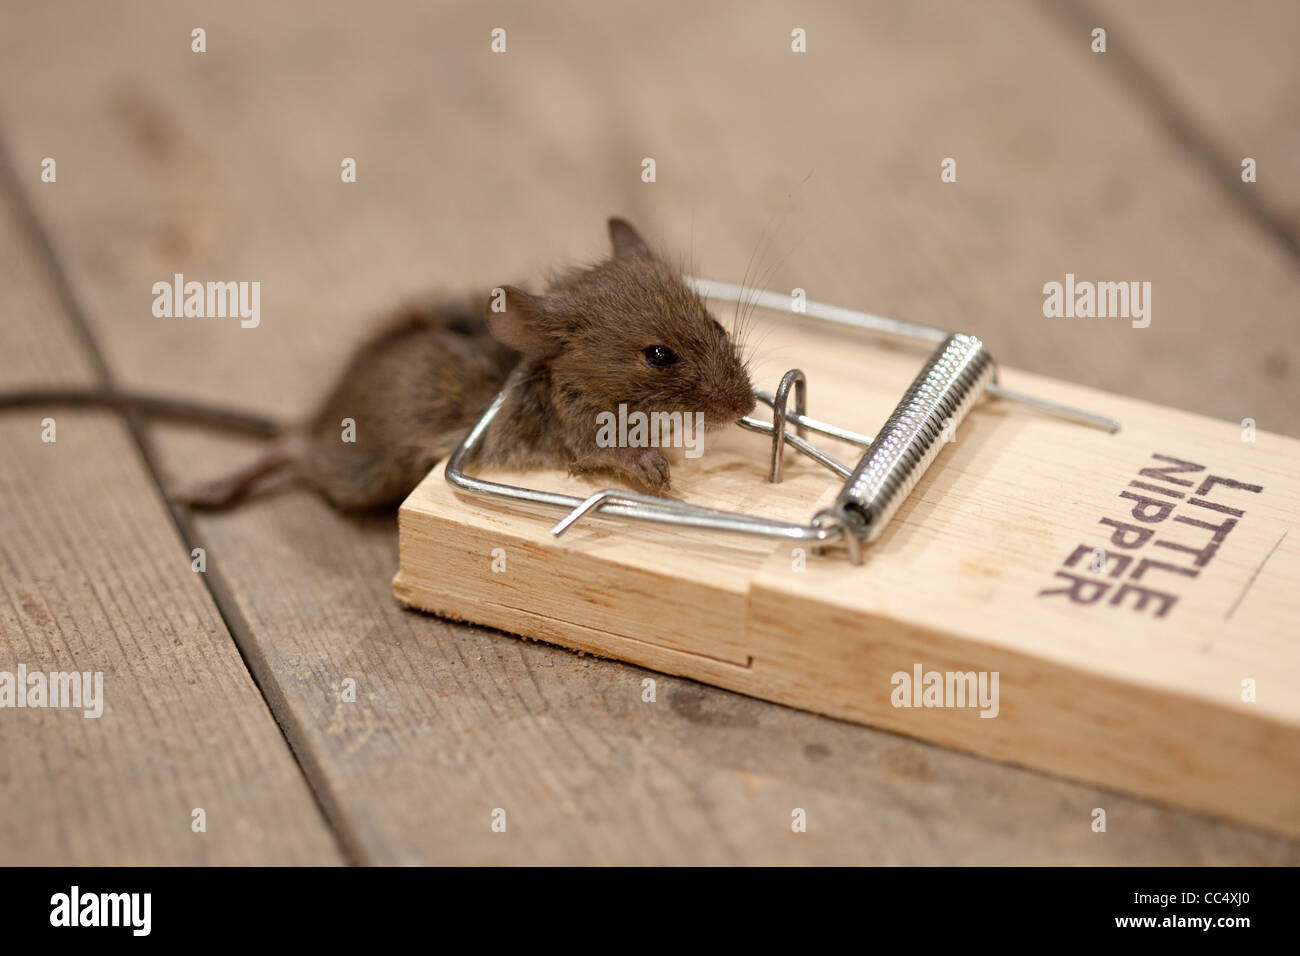 Very mouse trap got pics